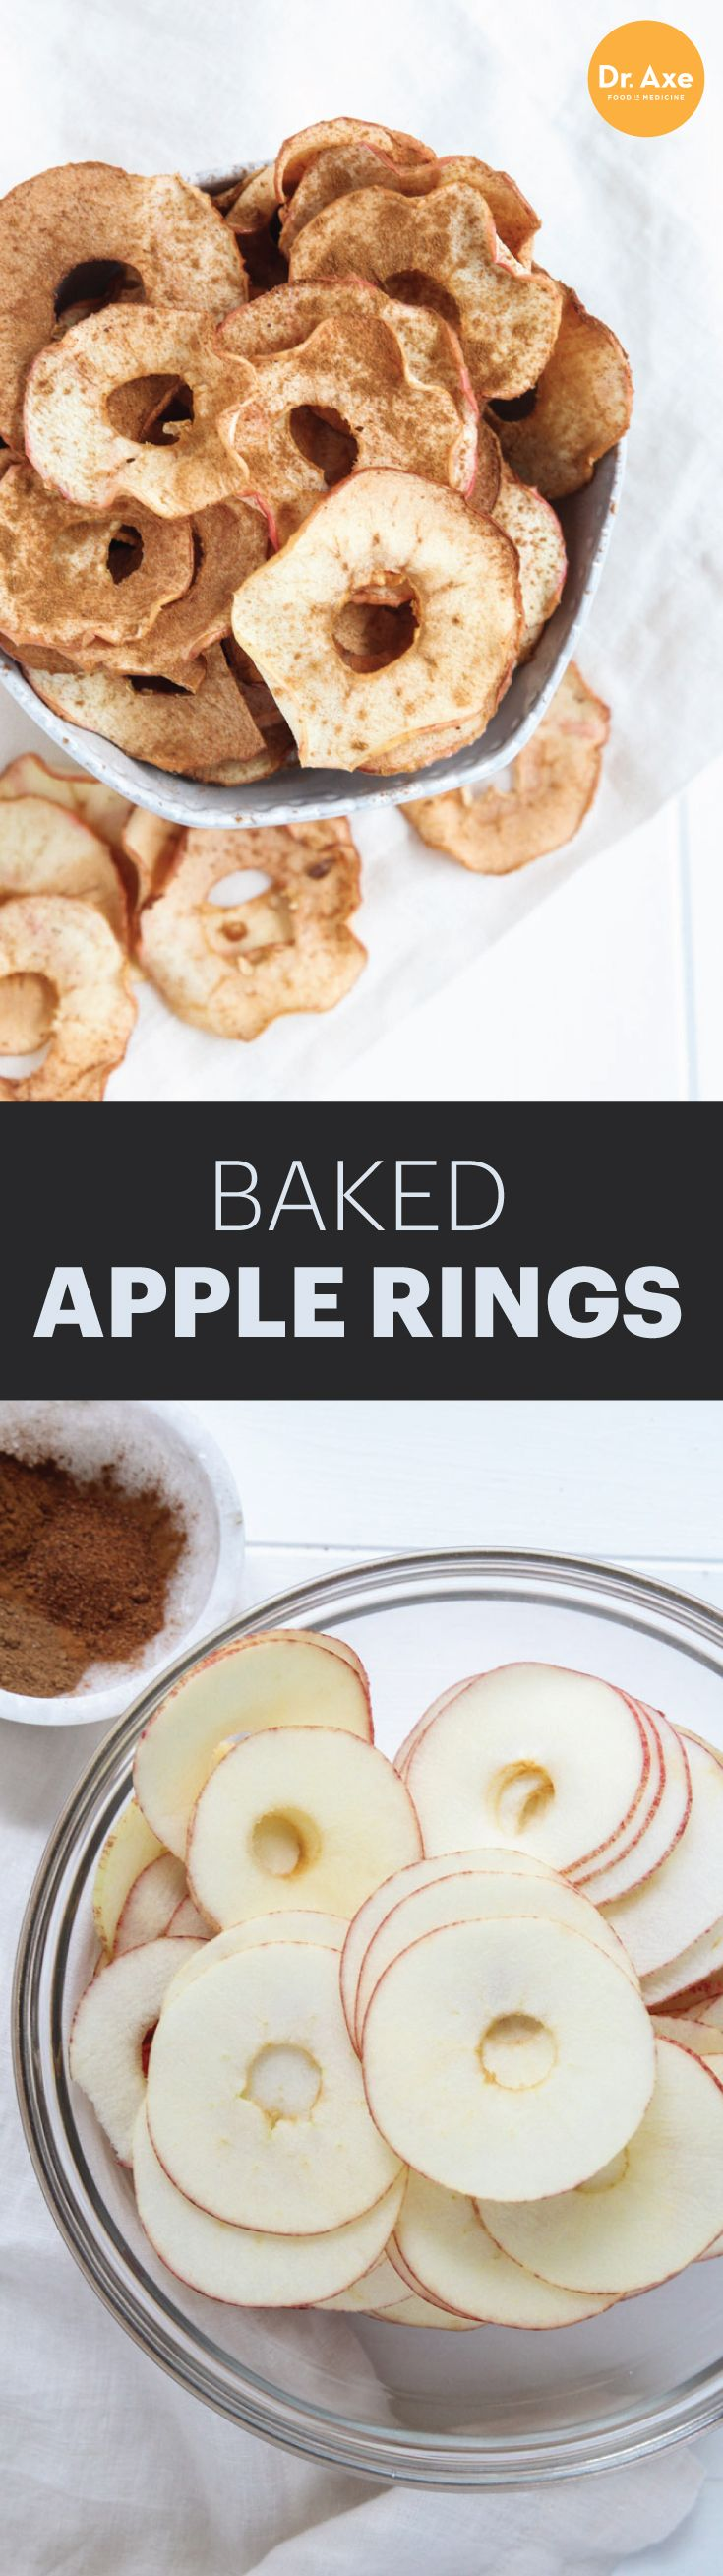 Baked Apple Rings make a great healthy snack!